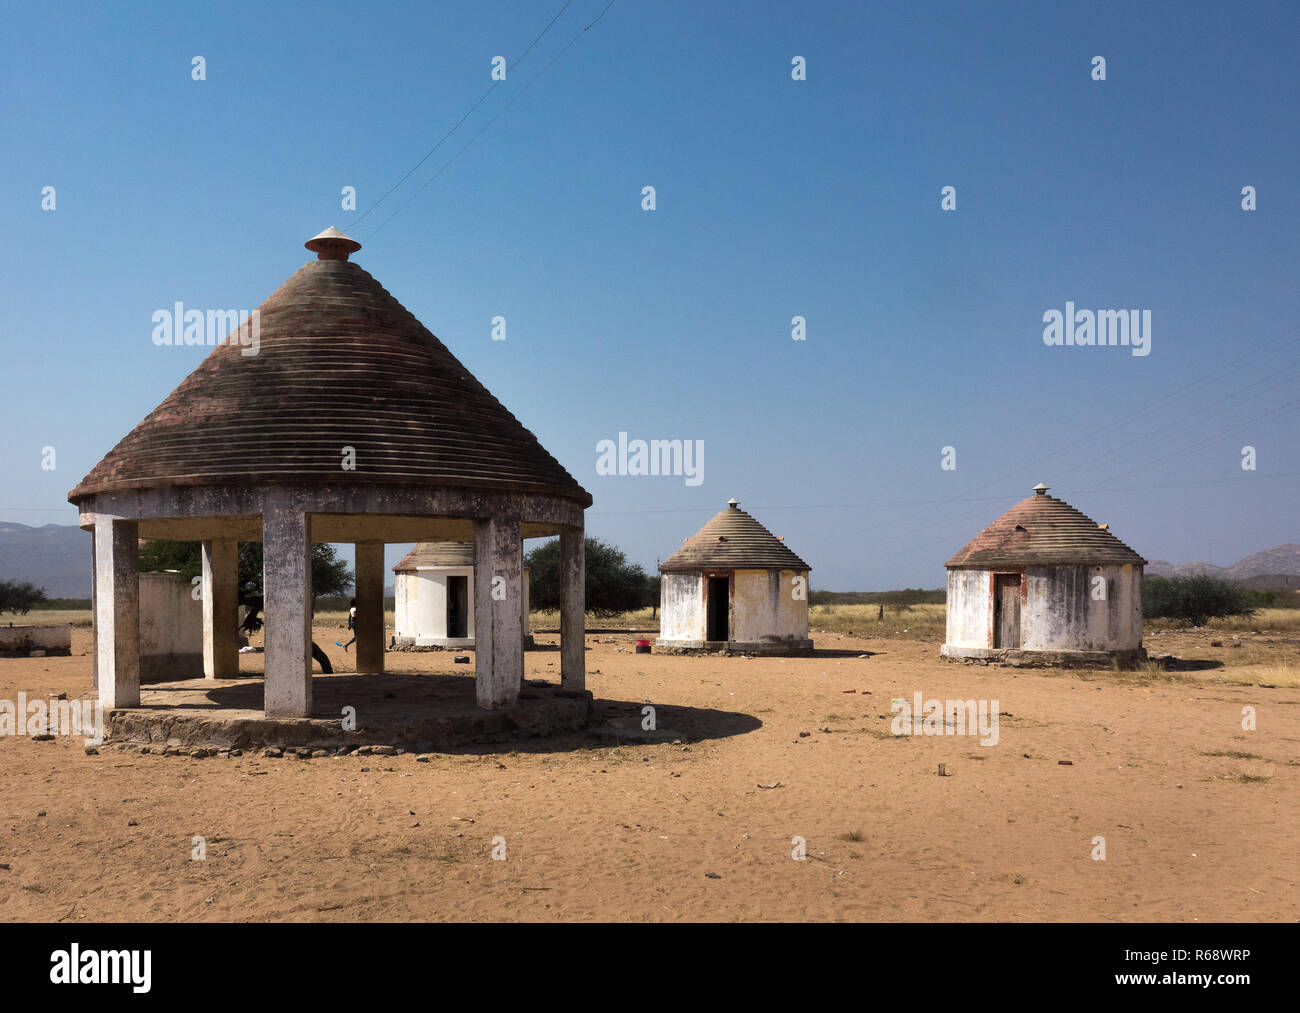 Village built by the portuguese with circular houses, Namibe Province, Caraculo, Angola - Stock Image